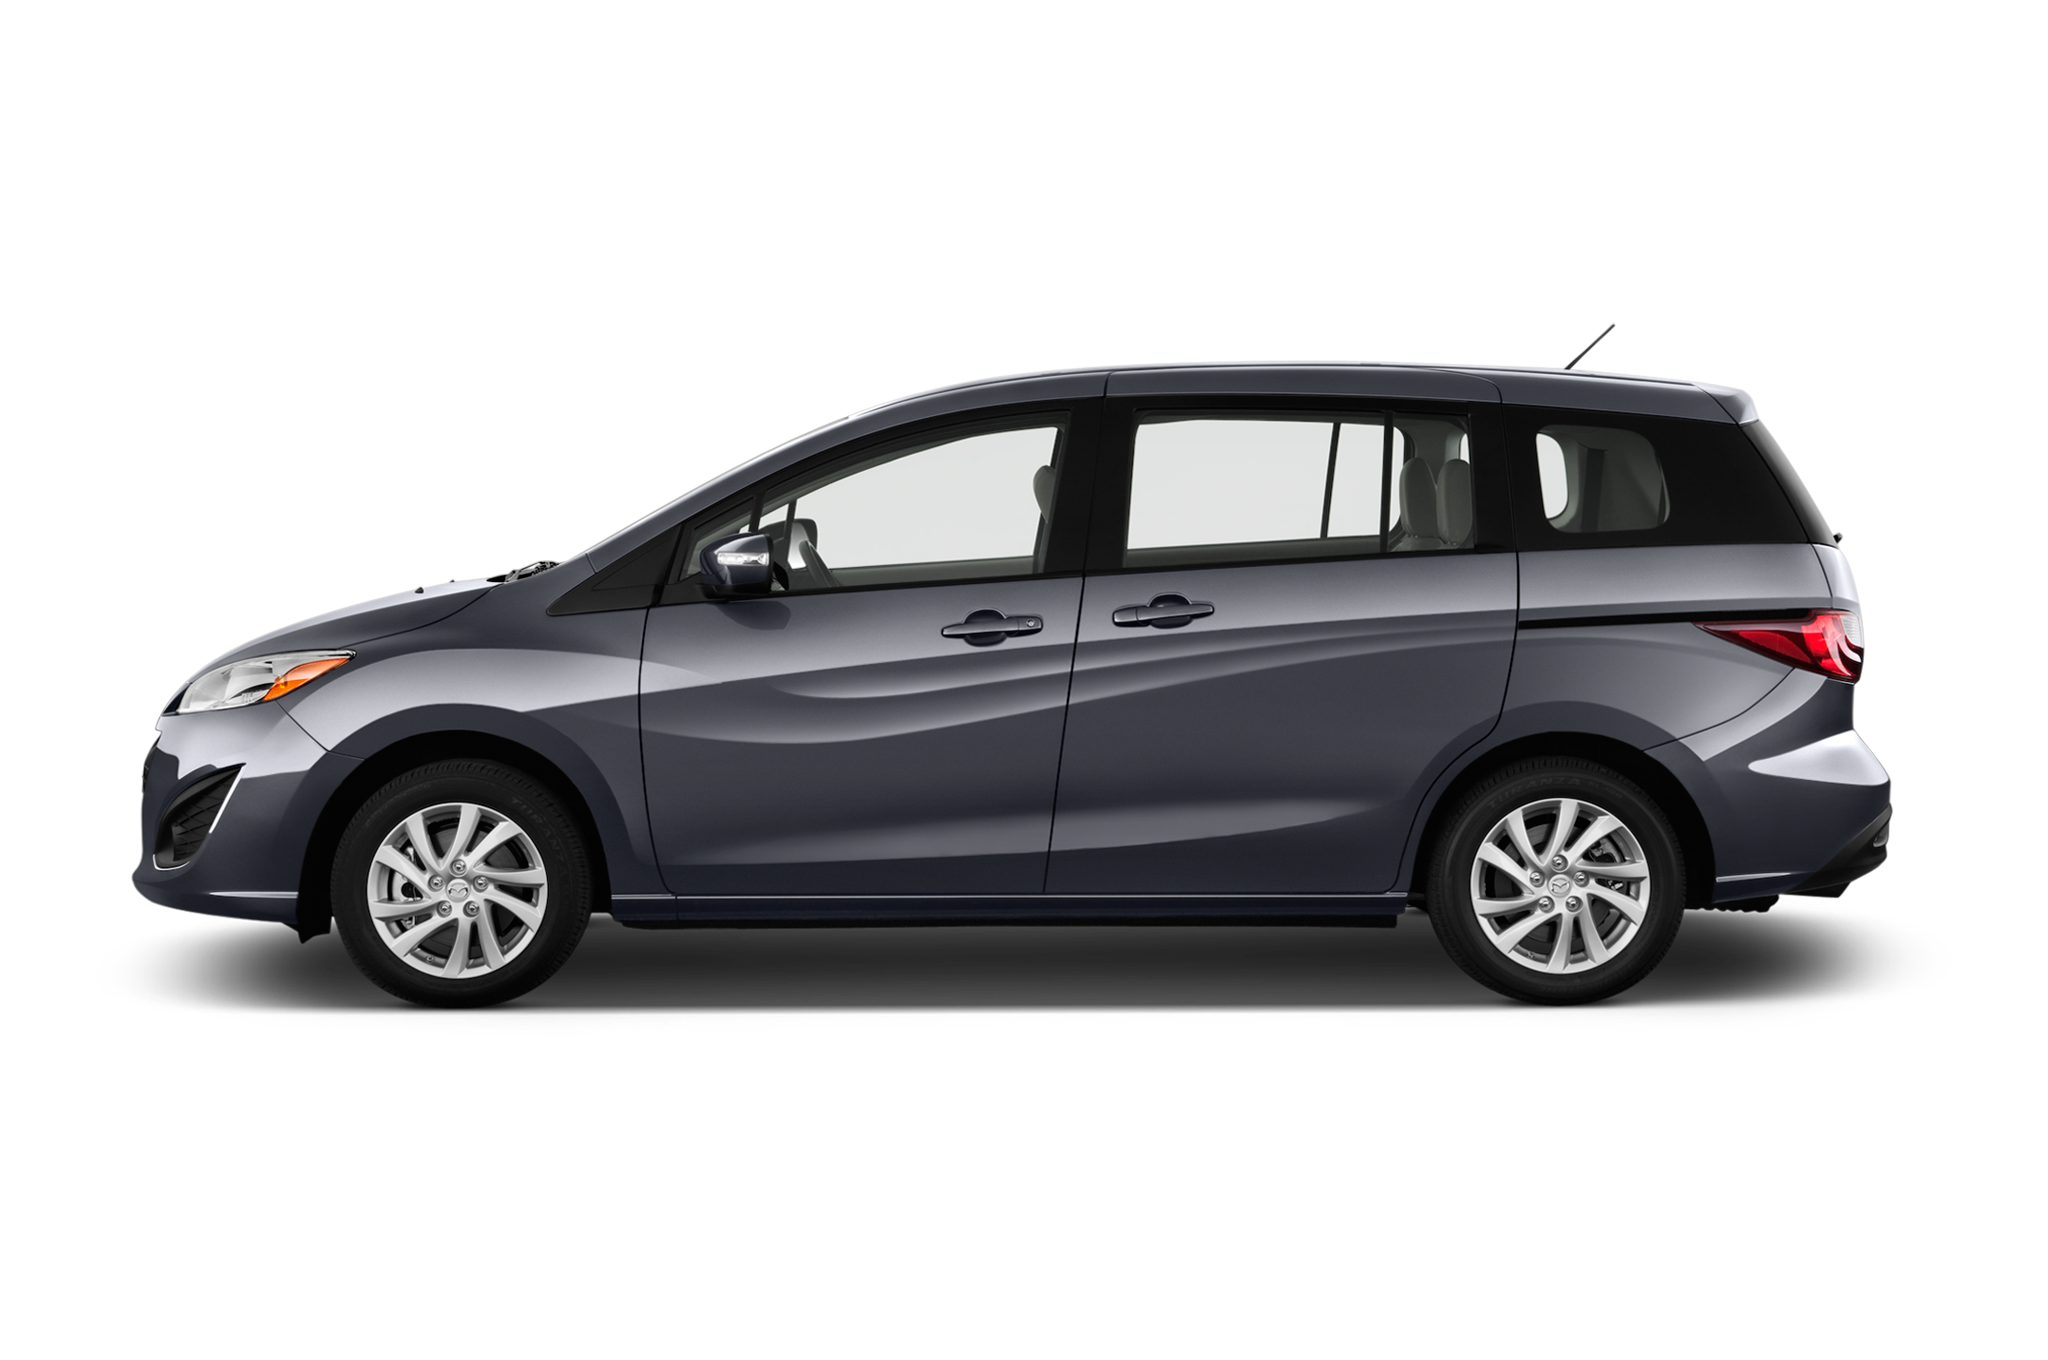 mazda5 minivan discontinued, no replacement planned